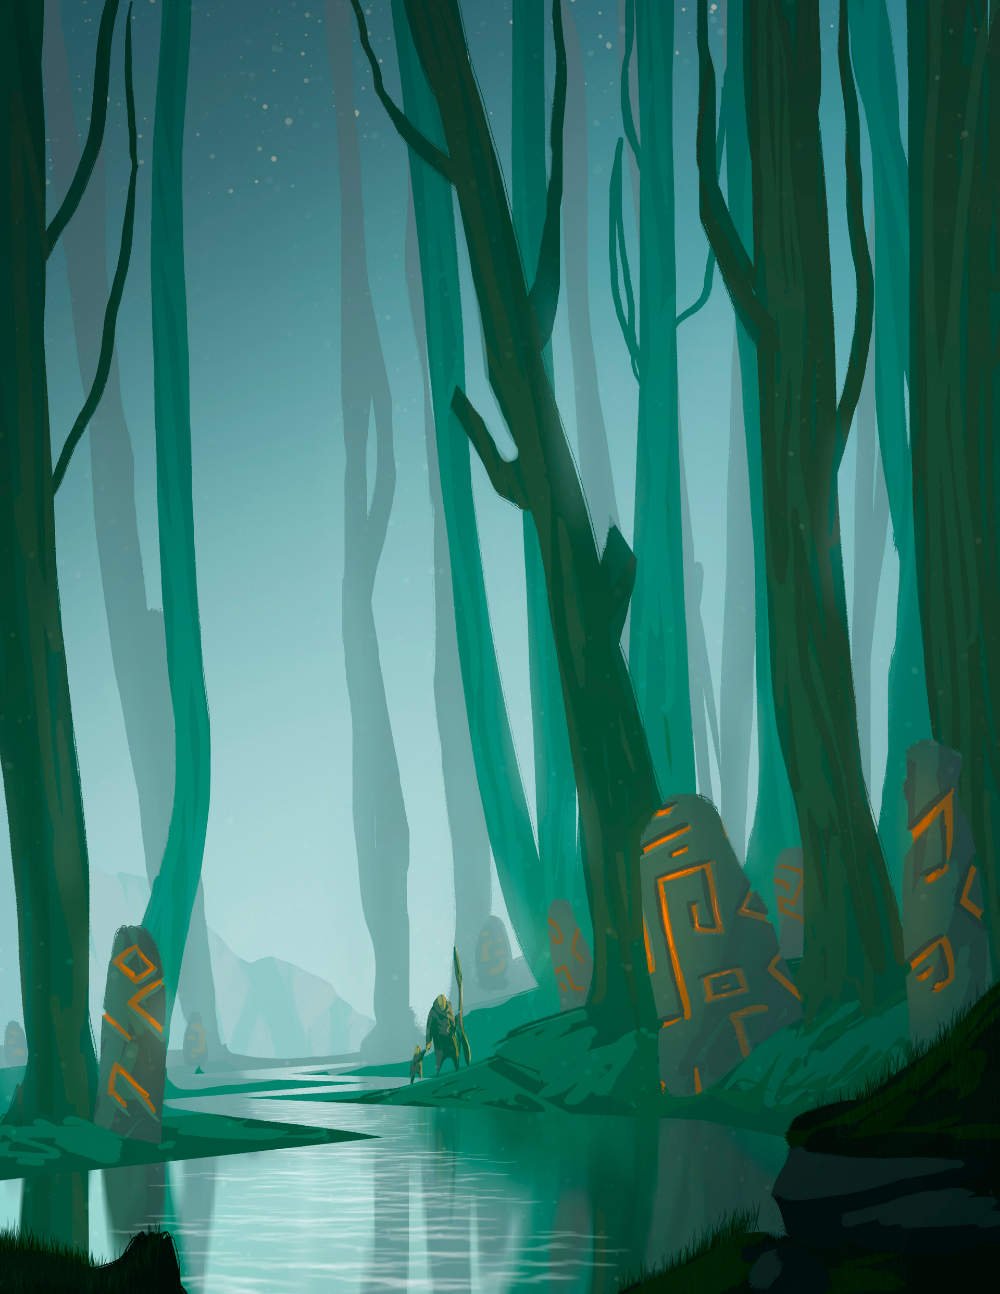 Forest Background Drawing : forest, background, drawing, ArtStation, Forest,, Geussens, Fantasy, Landscapes,, Forest, Illustration